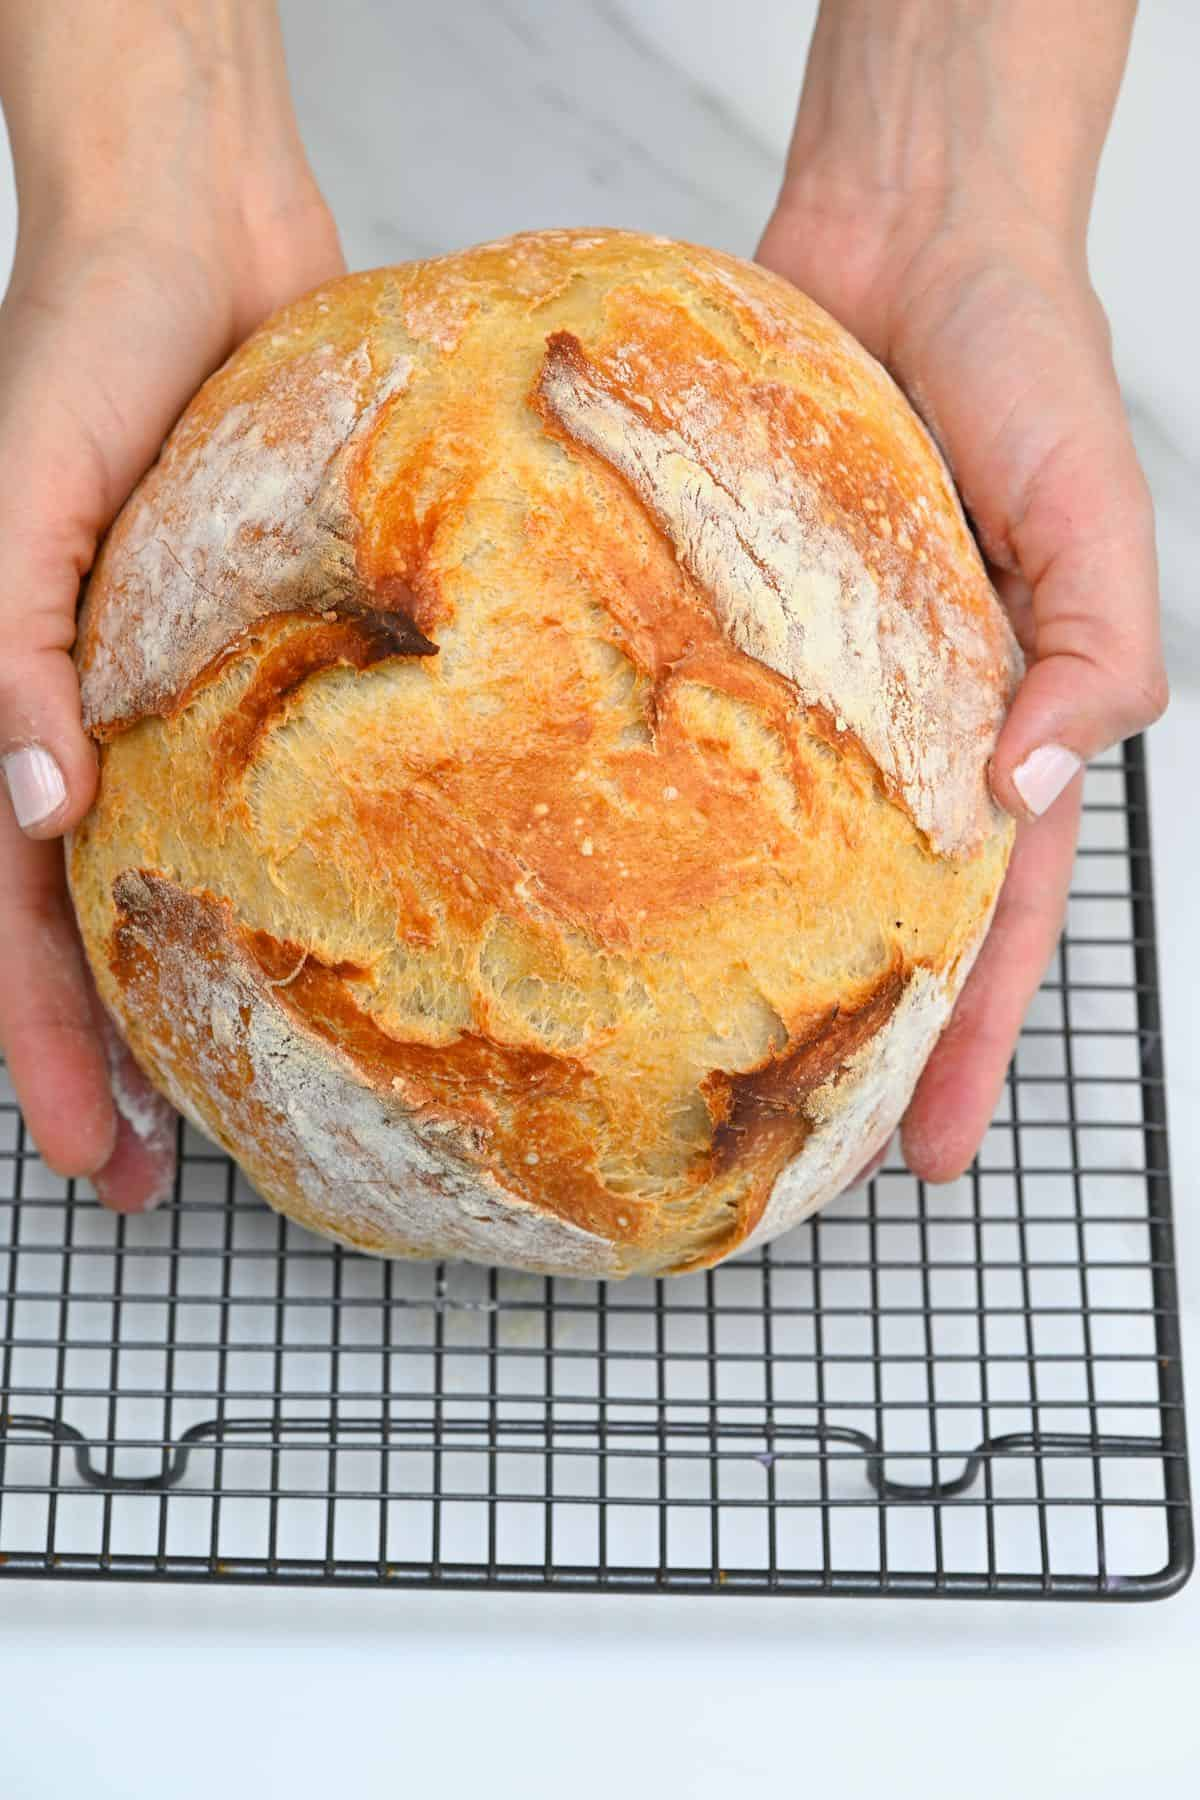 Two hands holding a no-knead bread over a cooling rack